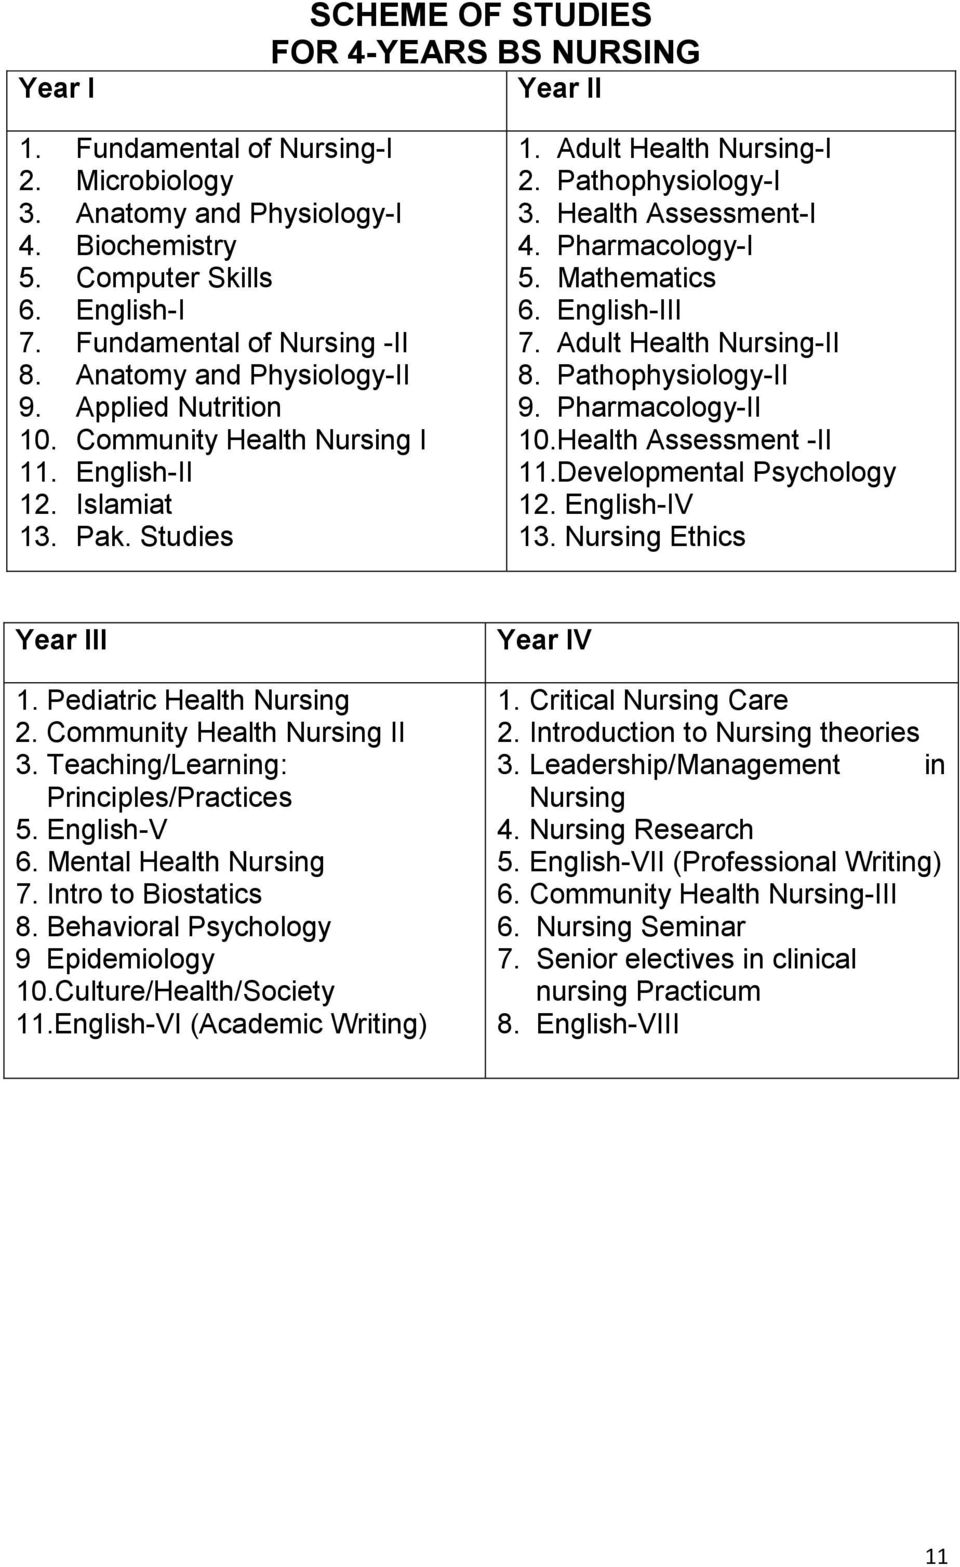 Pathophysiology-I 3. Health Assessment-I 4. Pharmacology-I 5. Mathematics 6. English-III 7. Adult Health Nursing-II 8. Pathophysiology-II 9. Pharmacology-II 10.Health Assessment -II 11.